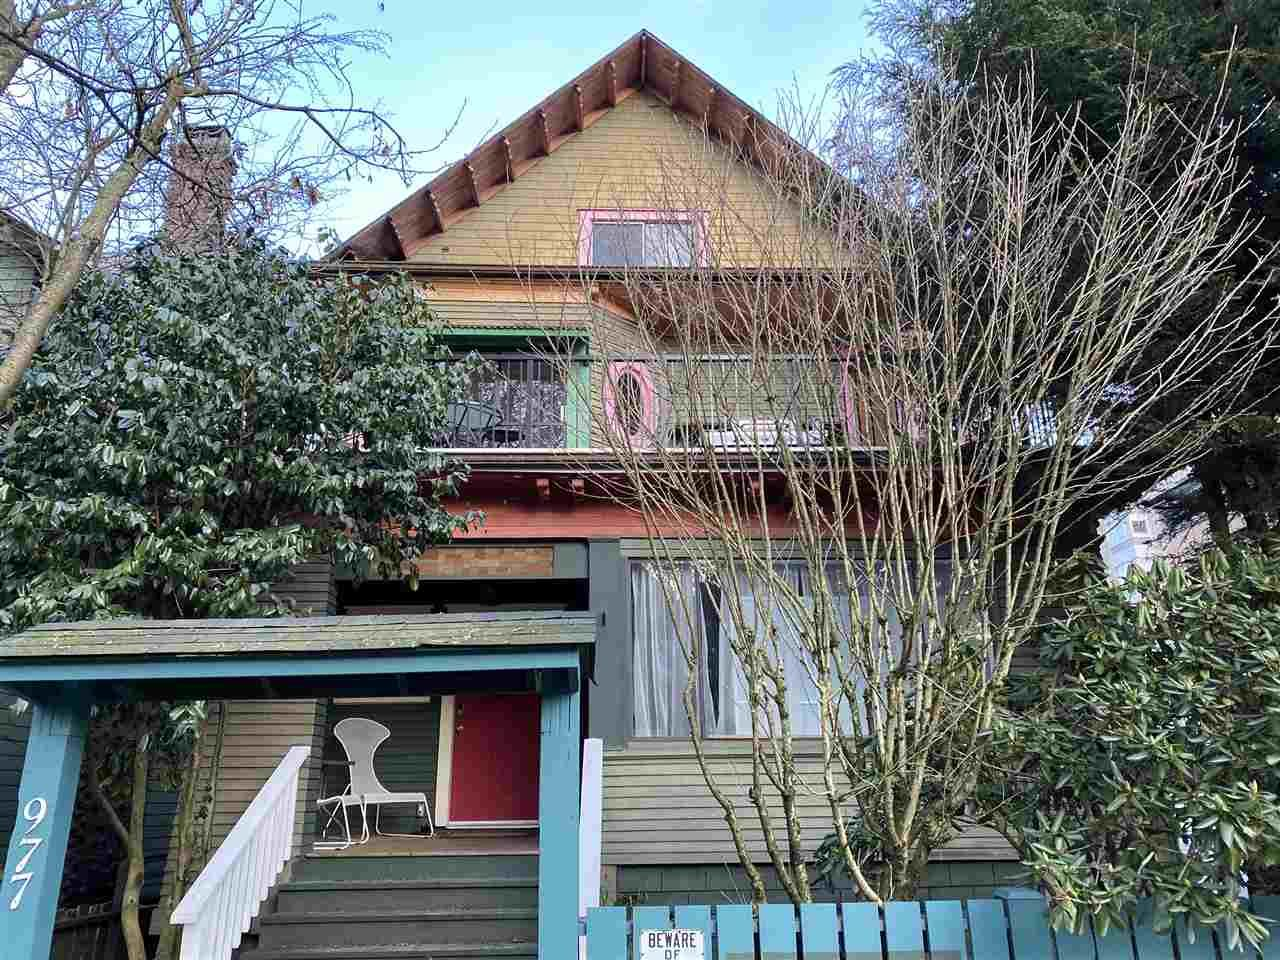 Main Photo: 977 CARDERO Street in Vancouver: West End VW Multifamily for sale (Vancouver West)  : MLS®# R2539033